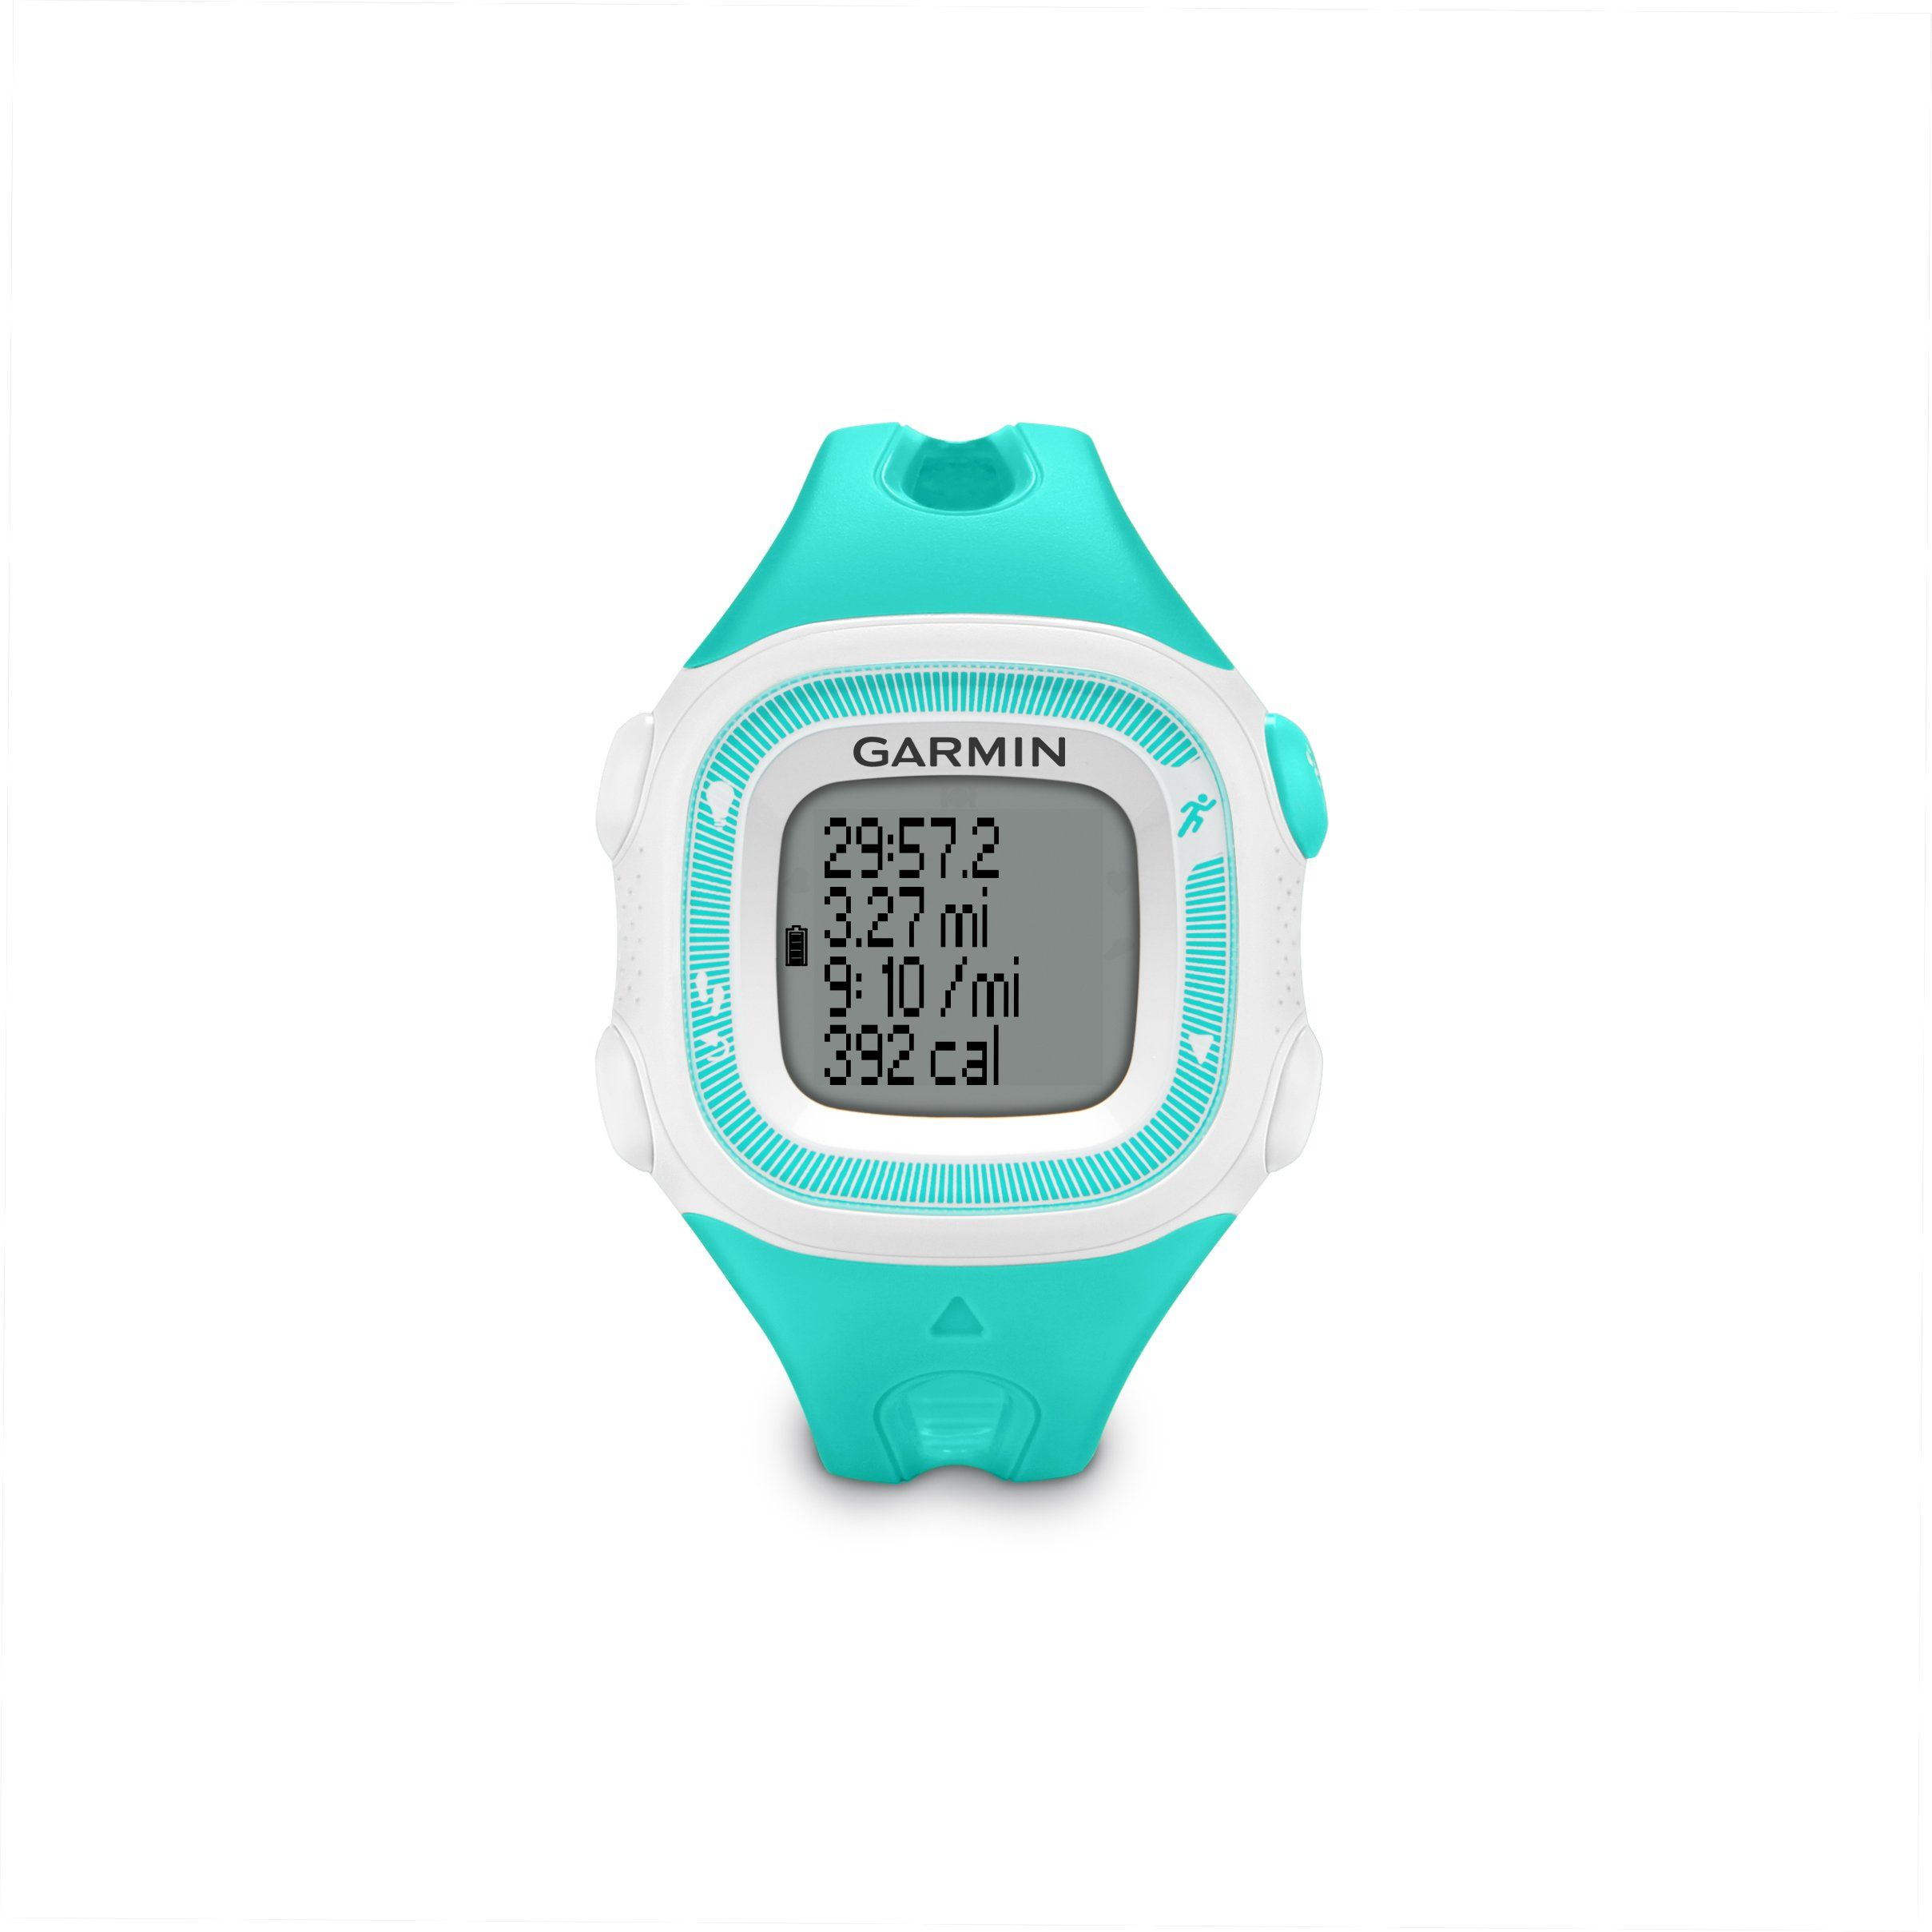 Garmin Forerunner 15 Small, Teal/White GPS